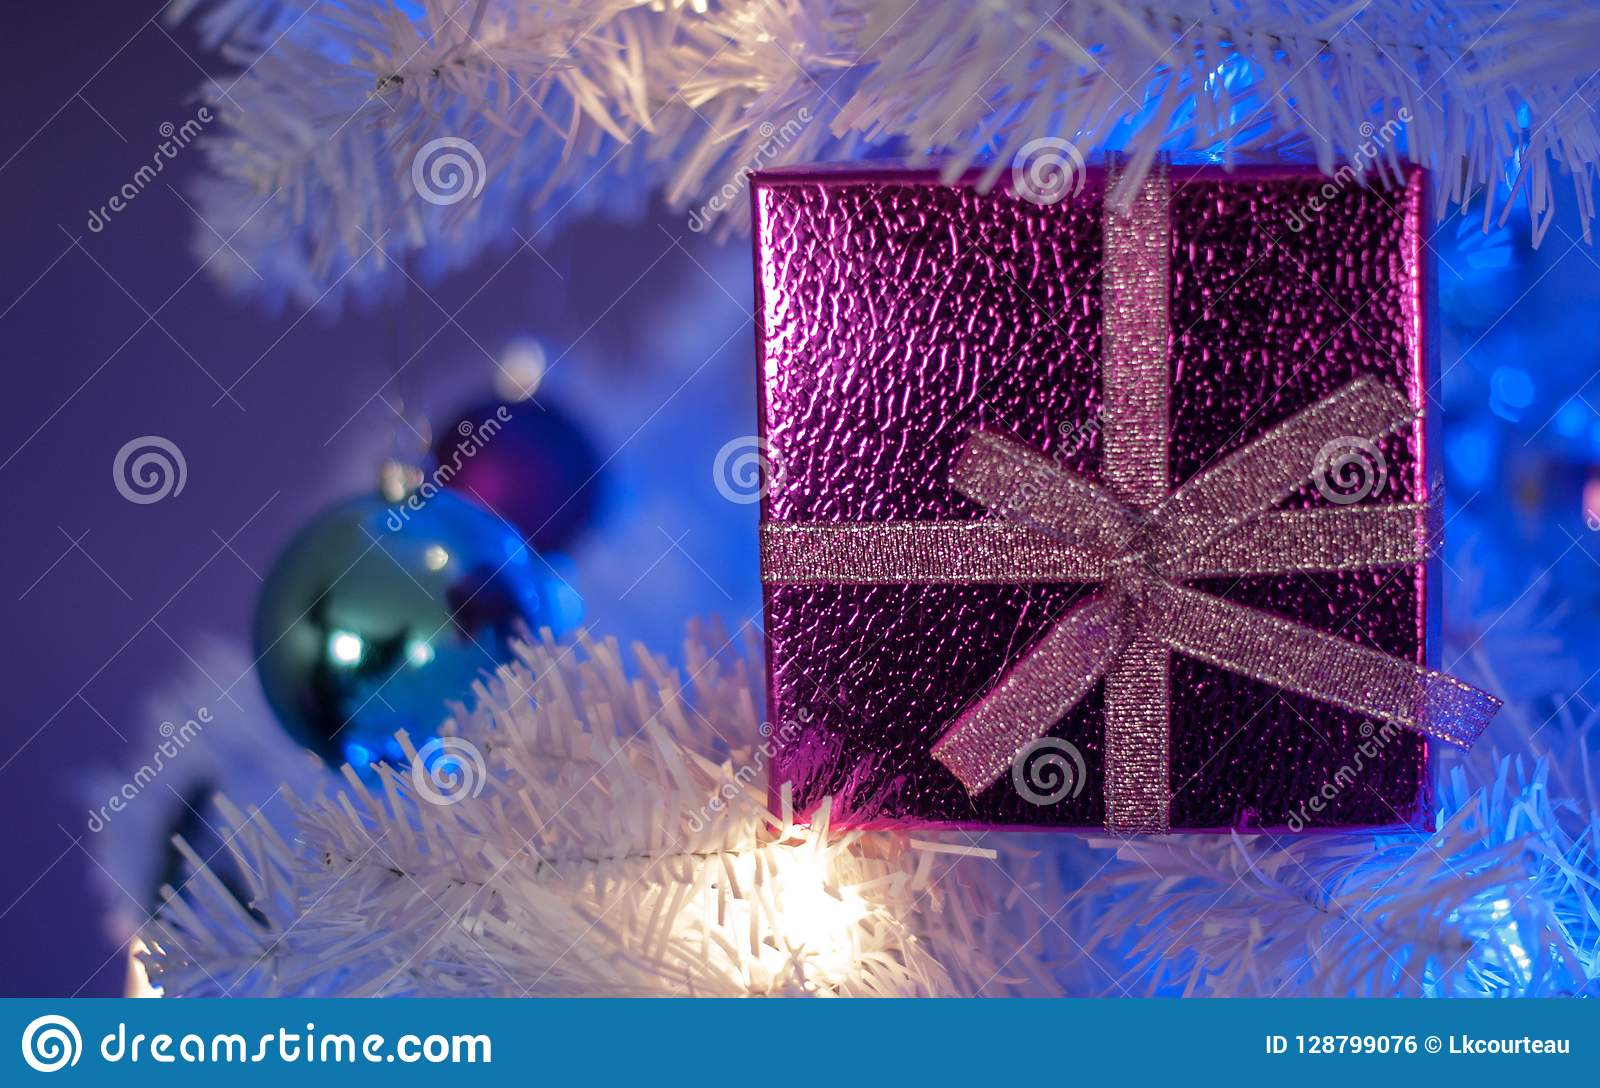 Pink Gift Box In White Christmas Tree With White Light Blue Light Teal Ornament Purple Ornament White Ornament Stock Photo Image Of Present Ornament 128799076